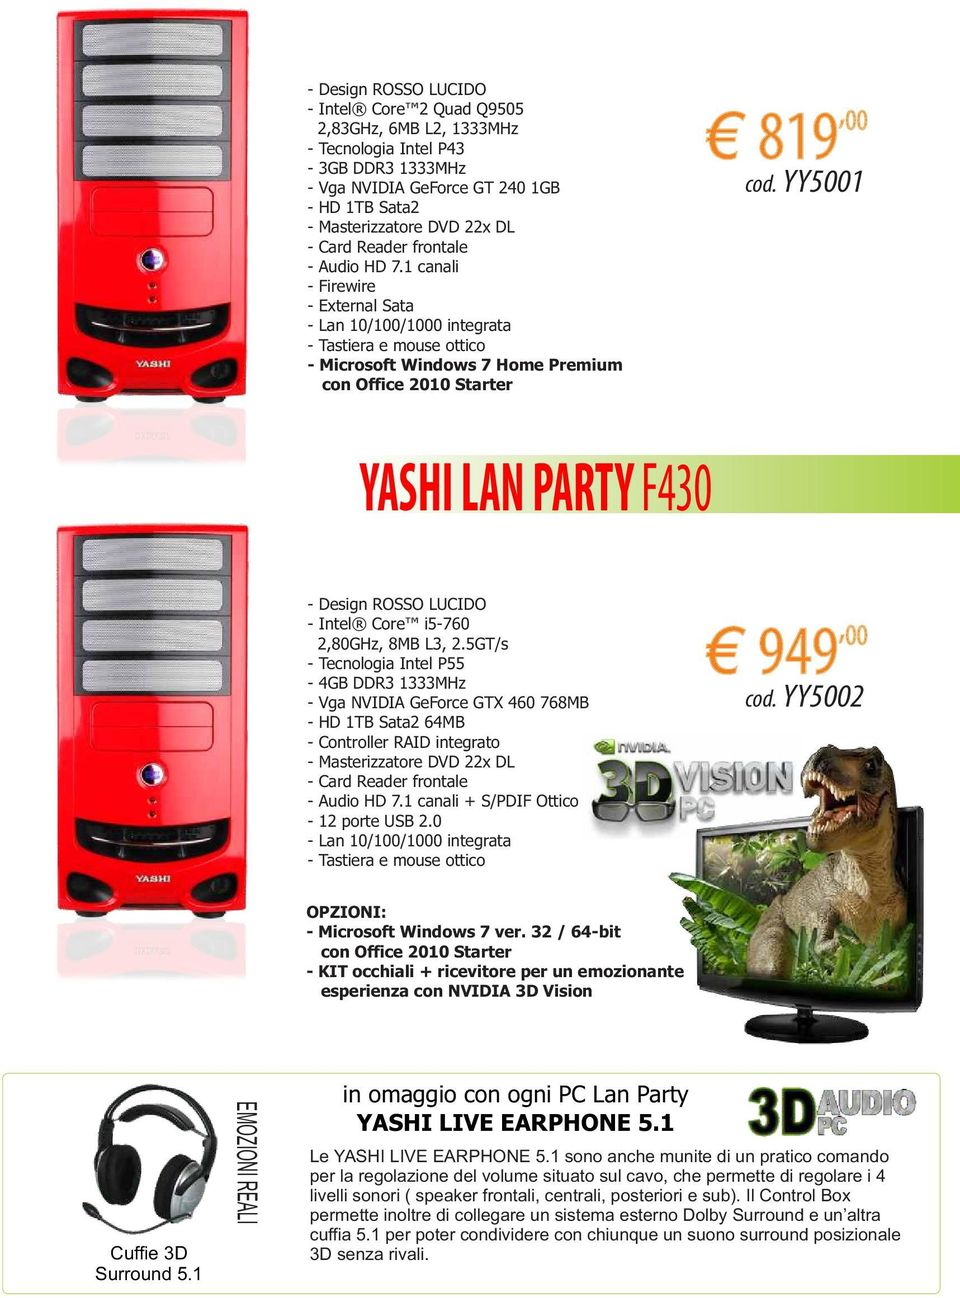 YY5001 YASHI LAN PARTY F430 - Design ROSSO LUCIDO - Intel Core i5-760 2,80GHz, 8MB L3, 2.